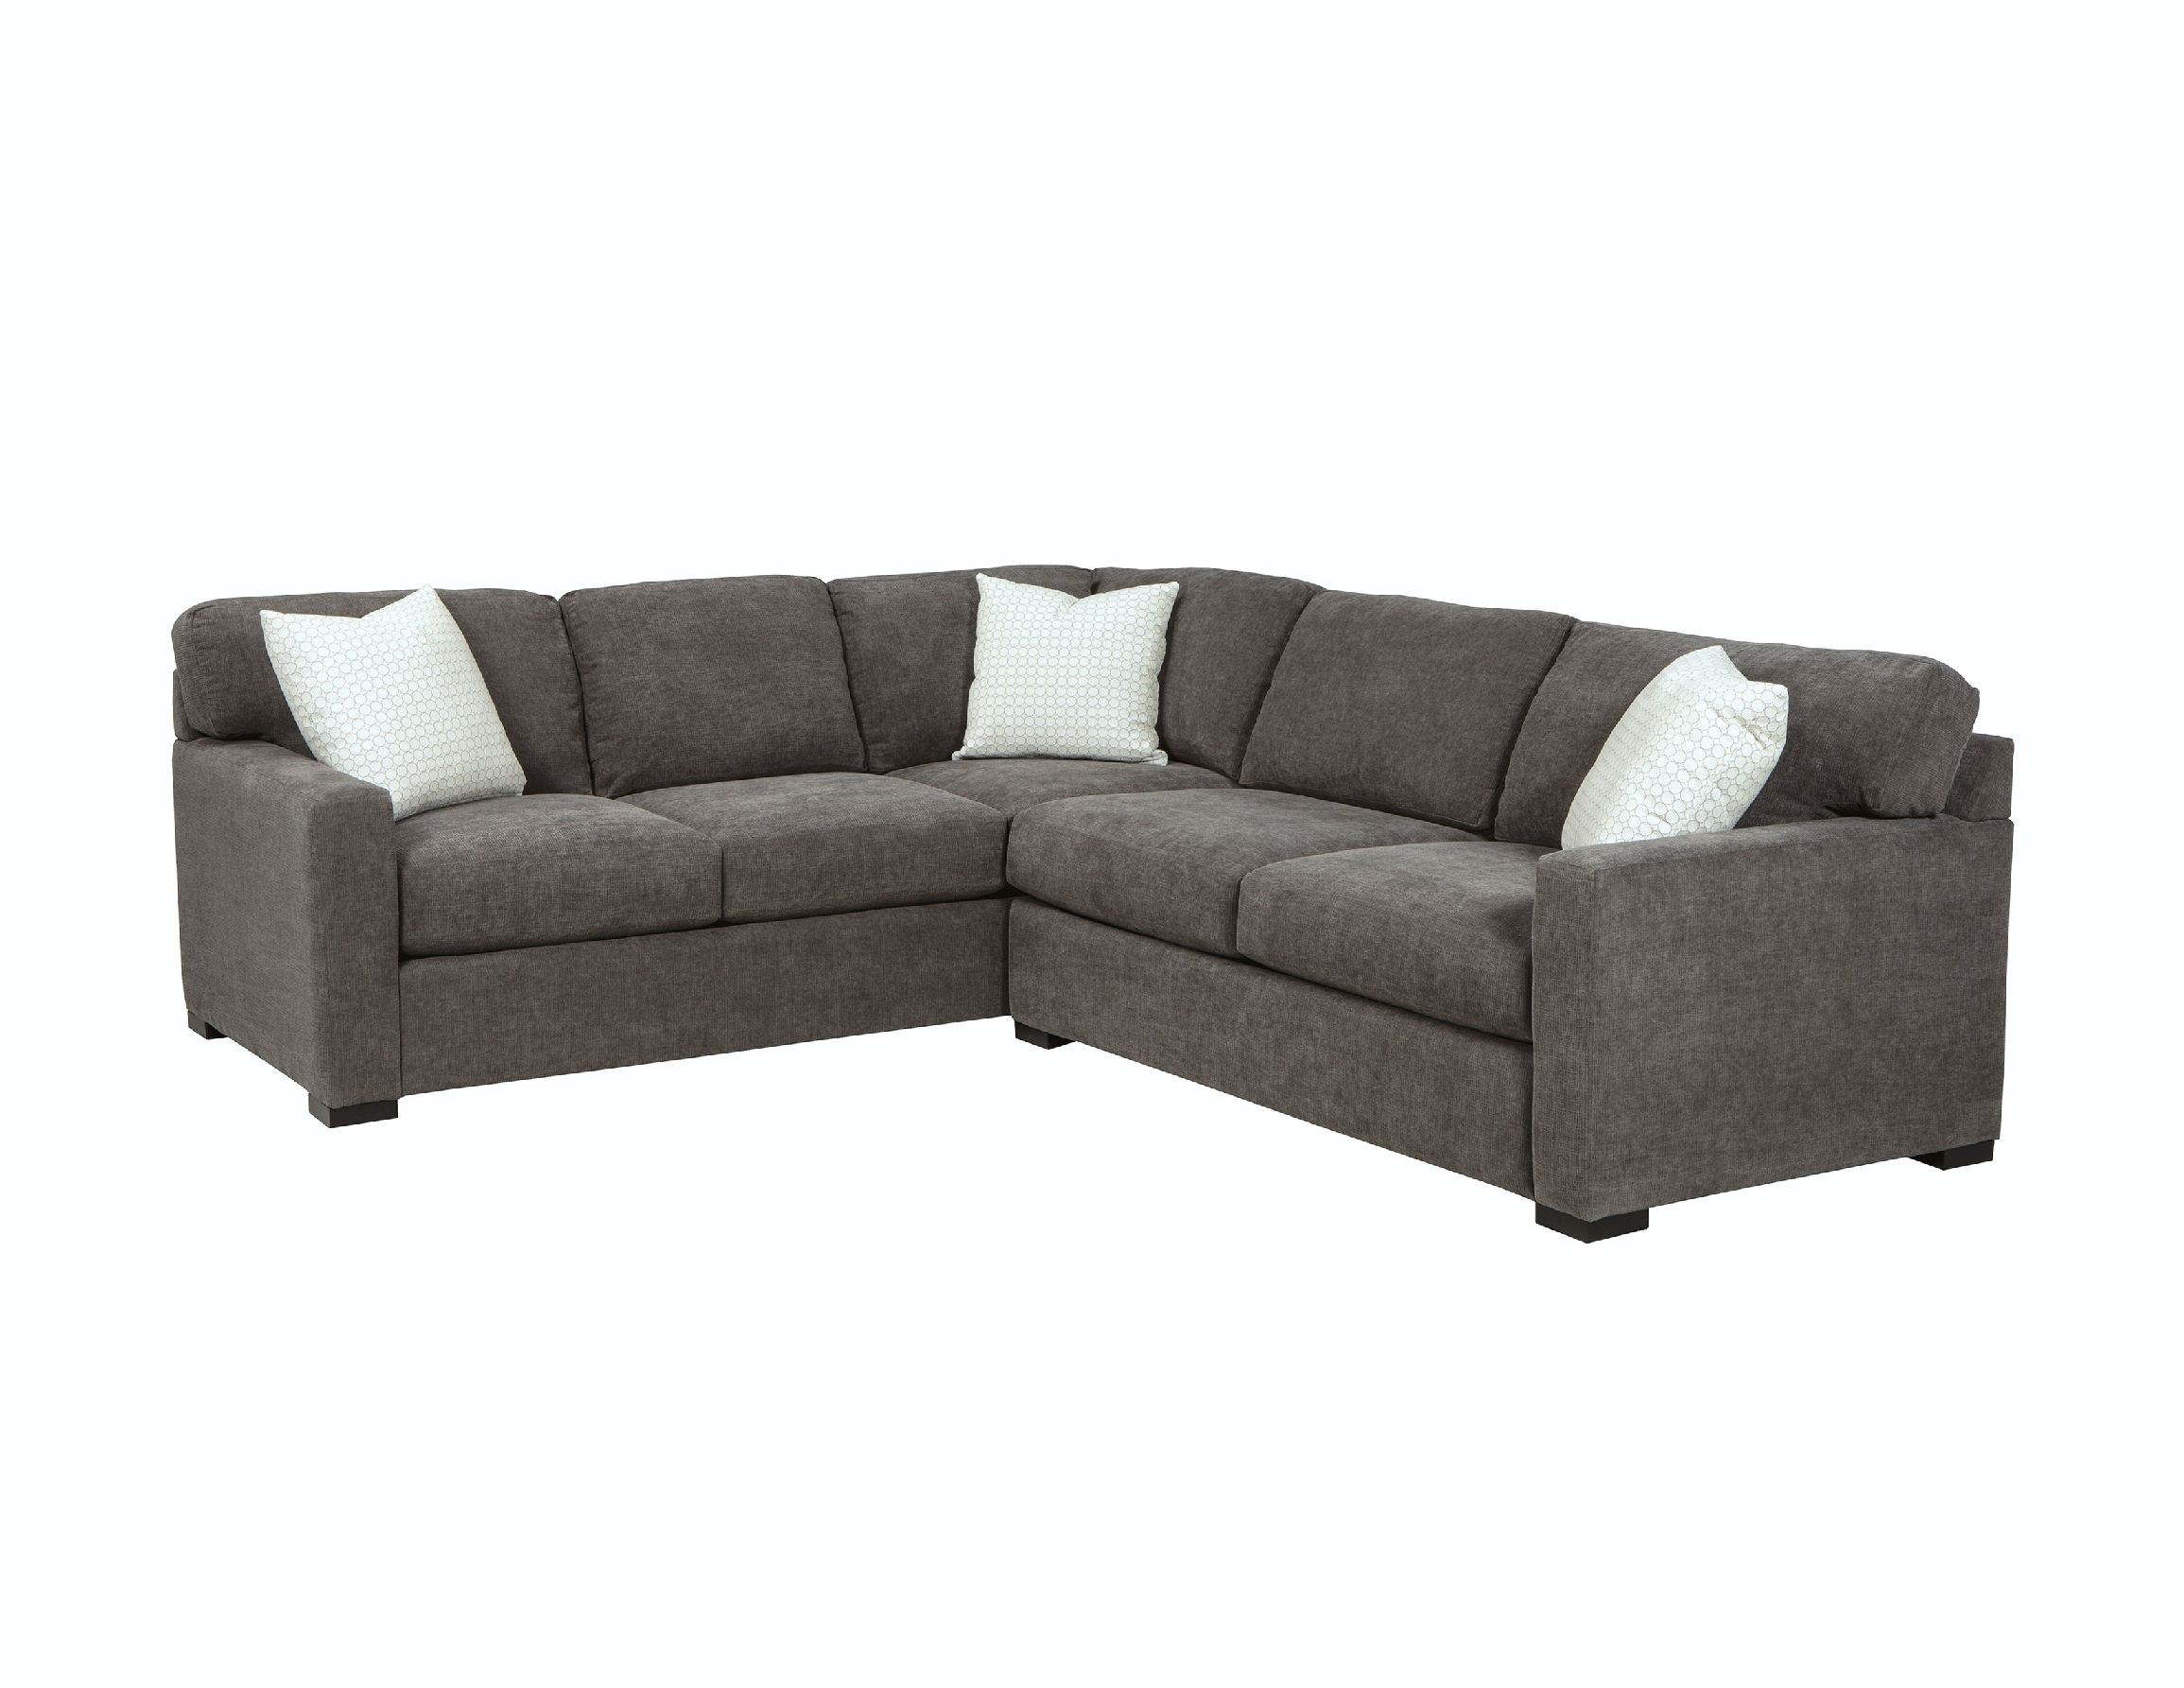 Lovely Jonathan Louis International Gregory Sectional 367 Sectional